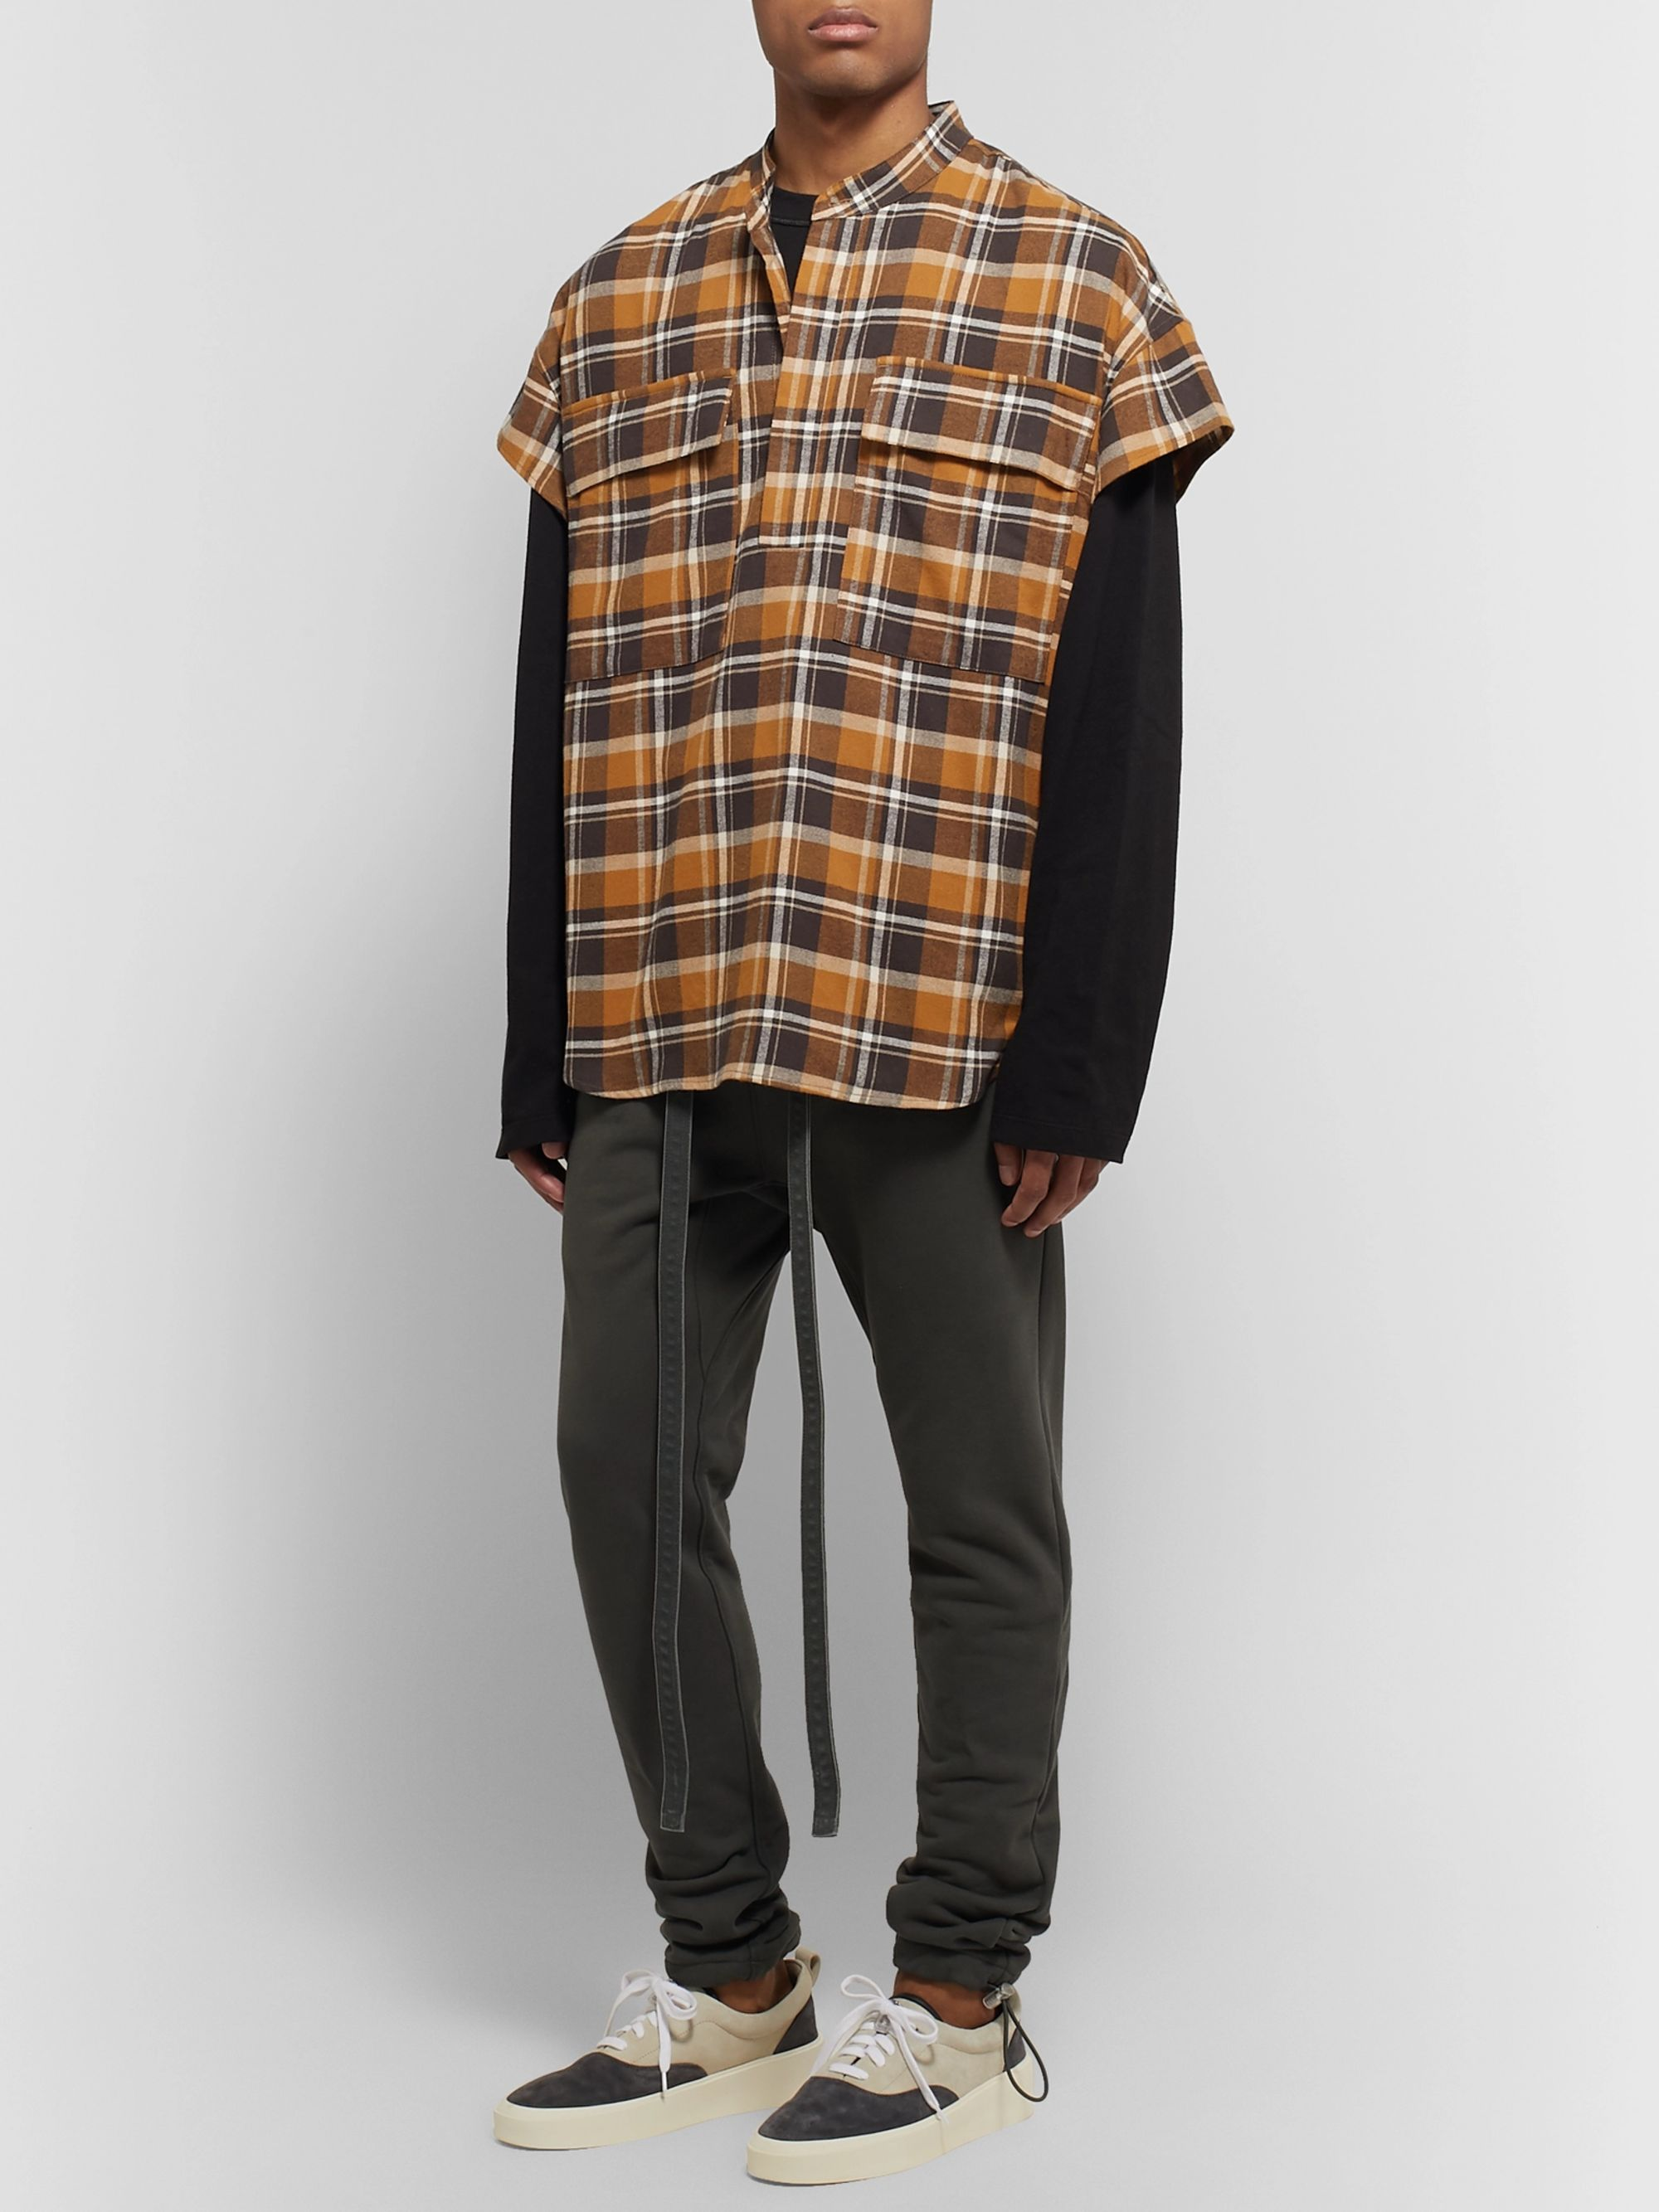 Fear of God Oversized Checked Cotton-Flannel Half-Placket Shirt